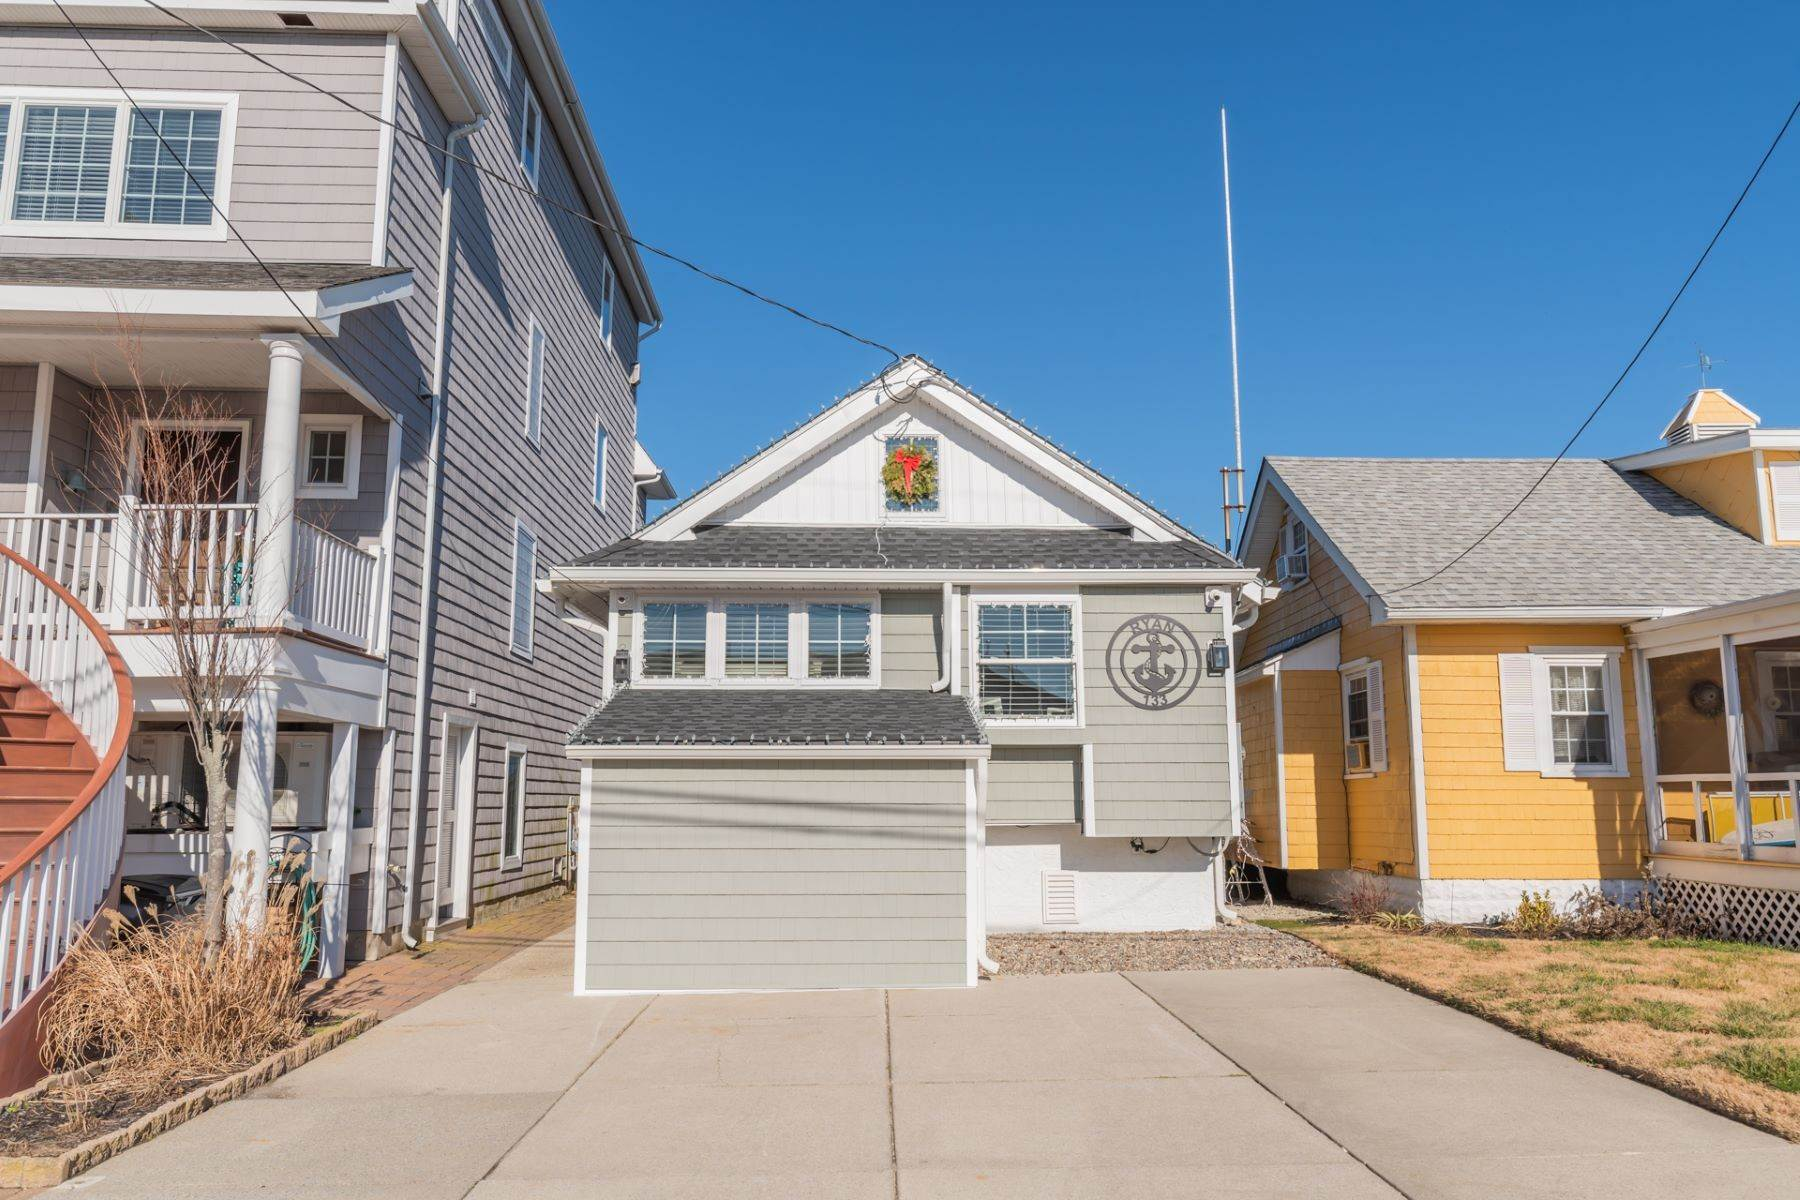 Property for Sale at Bayfront Cottage 133 W 17th Street Ocean City, New Jersey 08226 United States